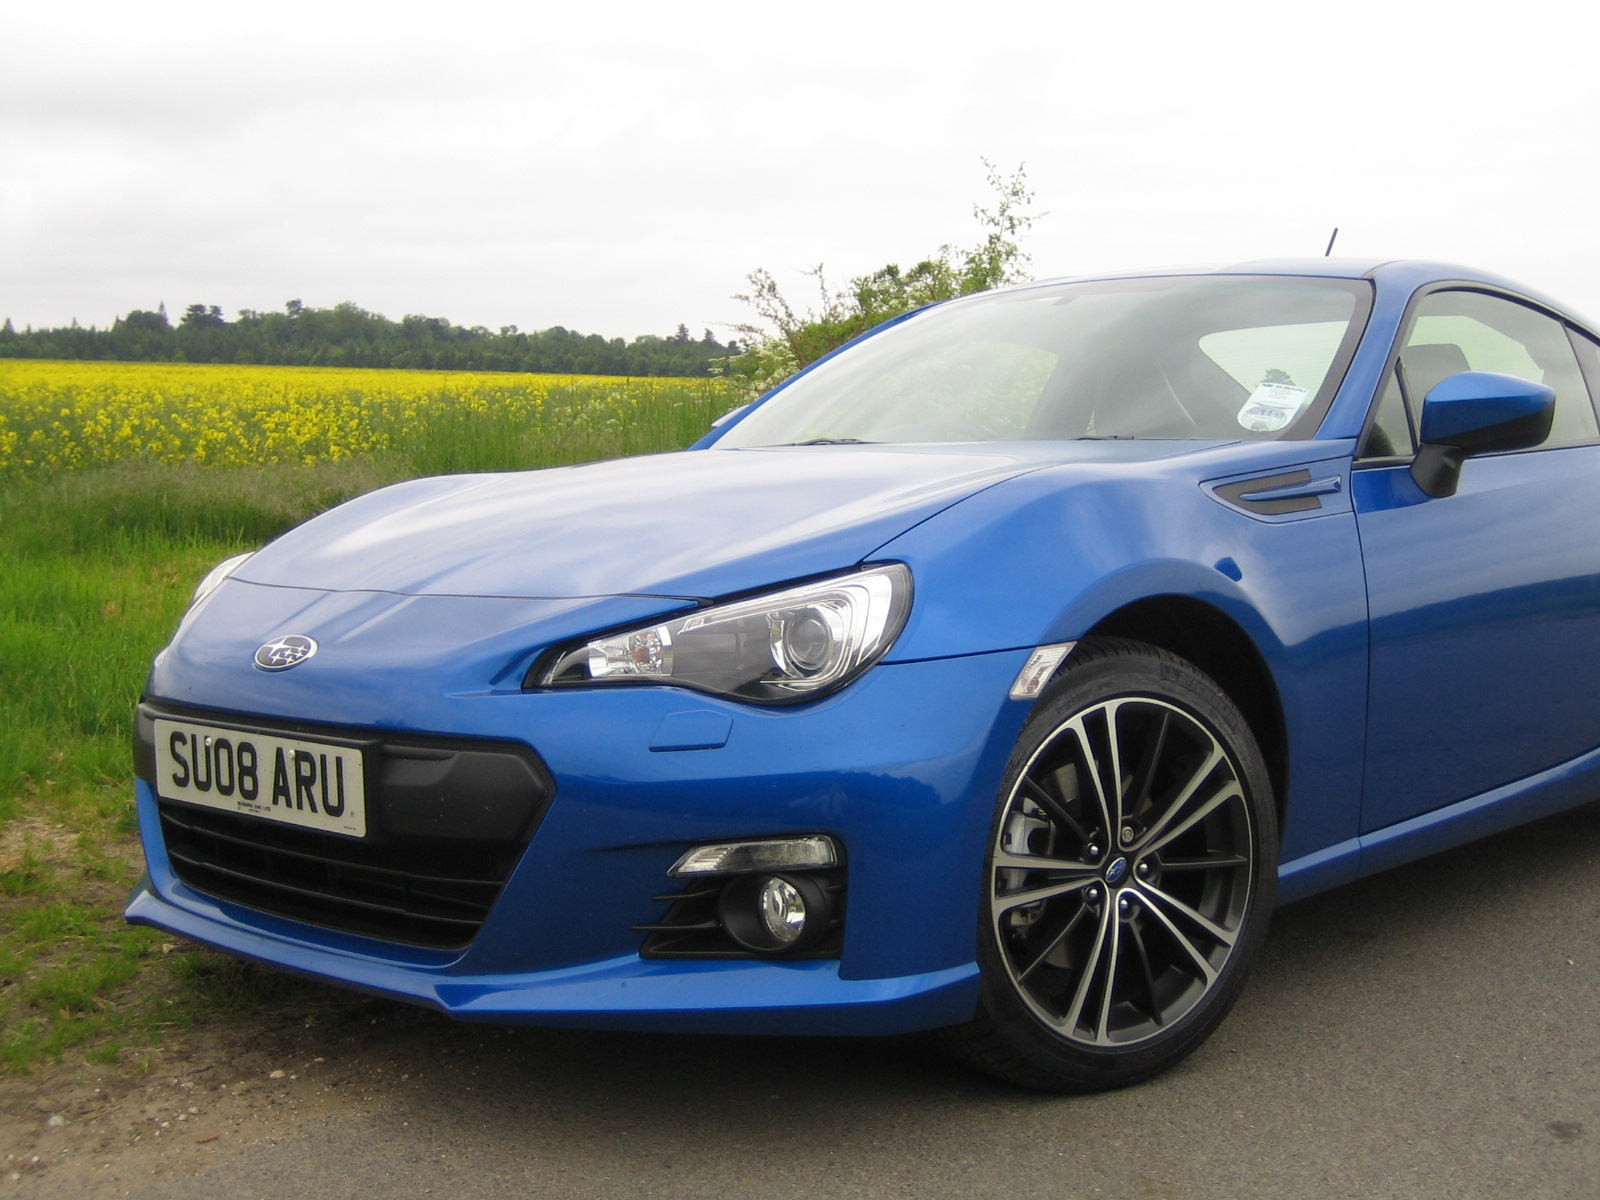 subaru brz road test great looking sports car fast and. Black Bedroom Furniture Sets. Home Design Ideas